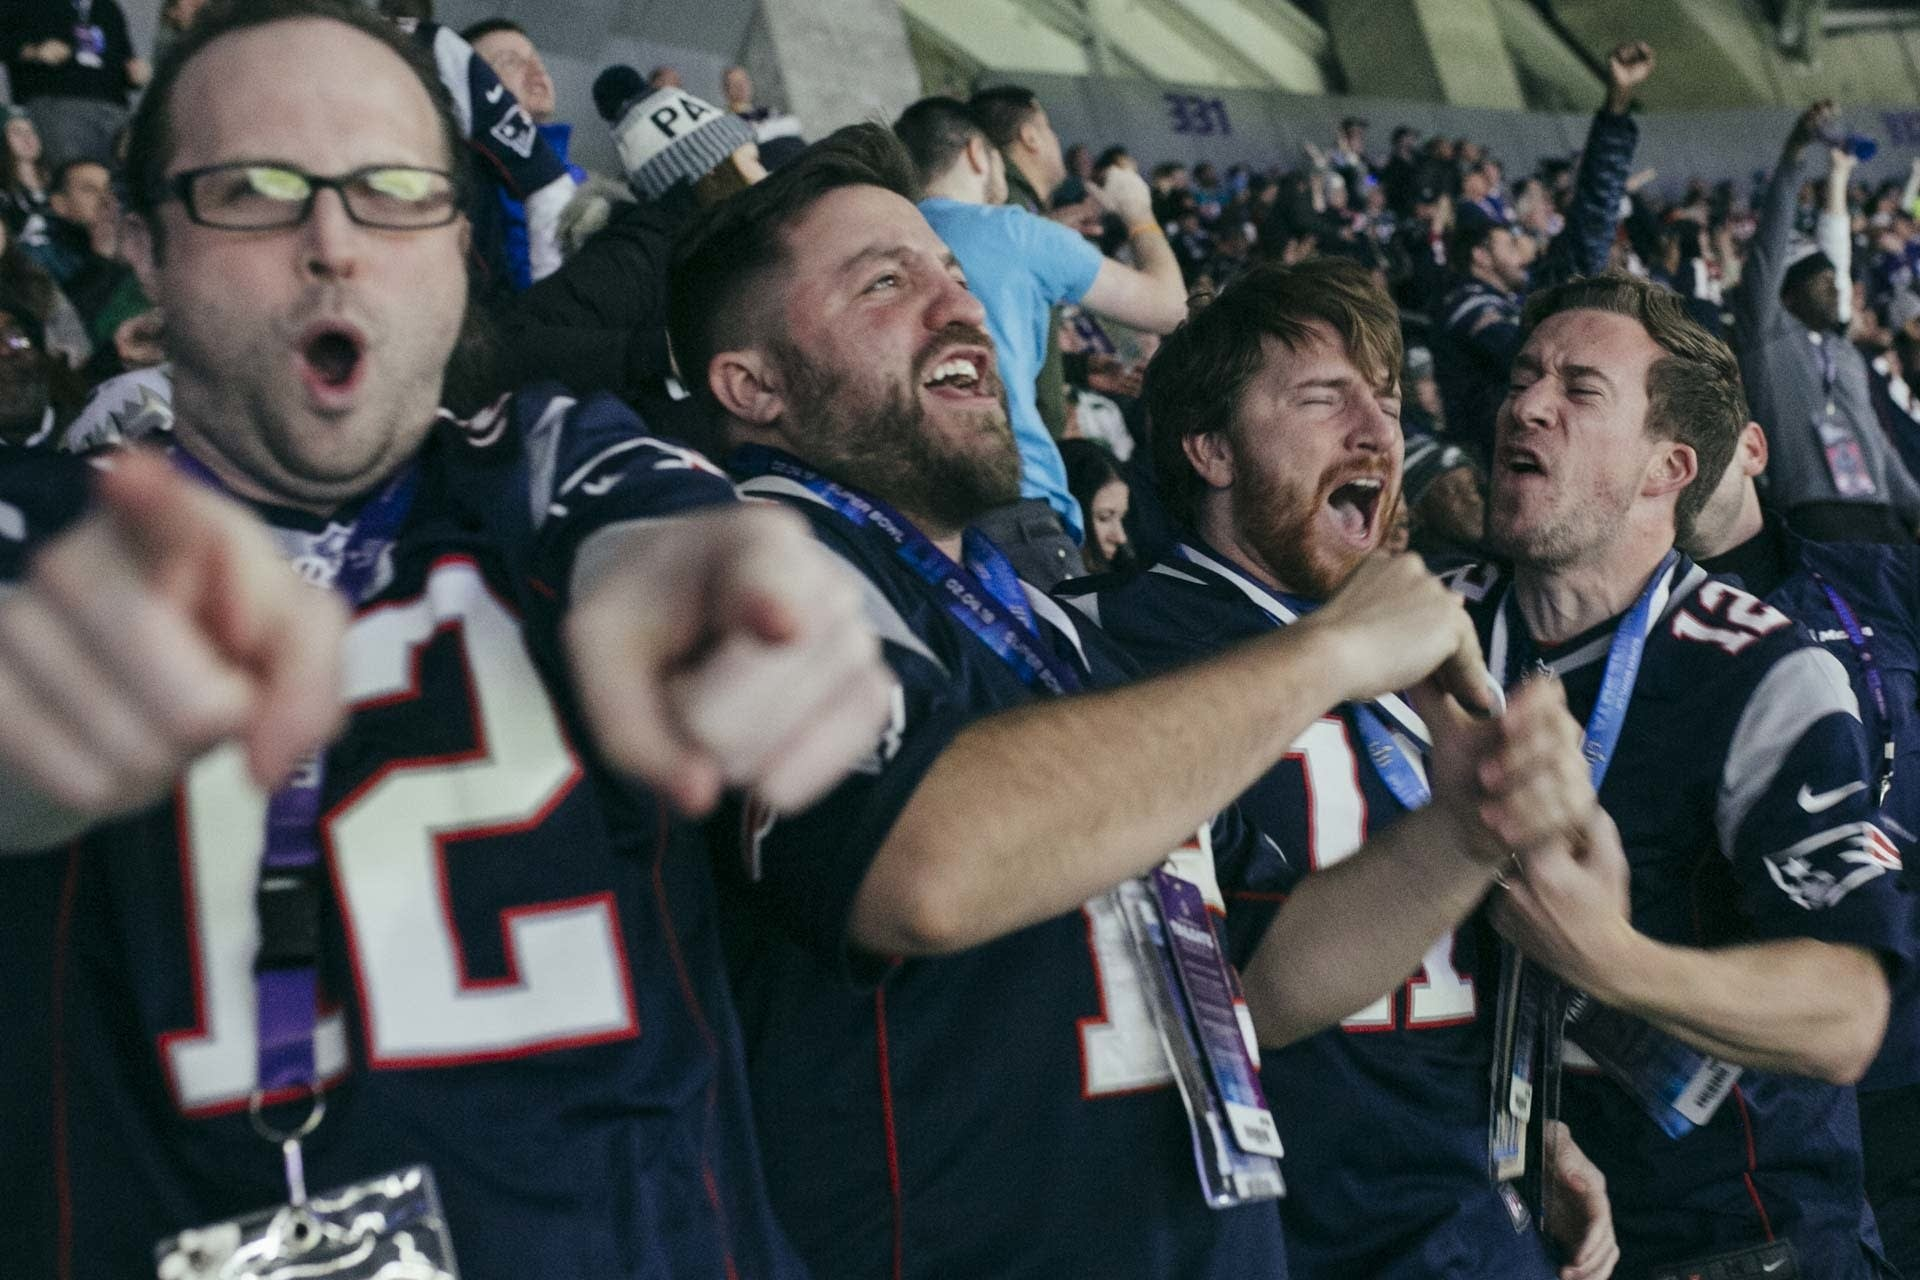 Four Patriots fan celebrate after their team scored a touchdown.